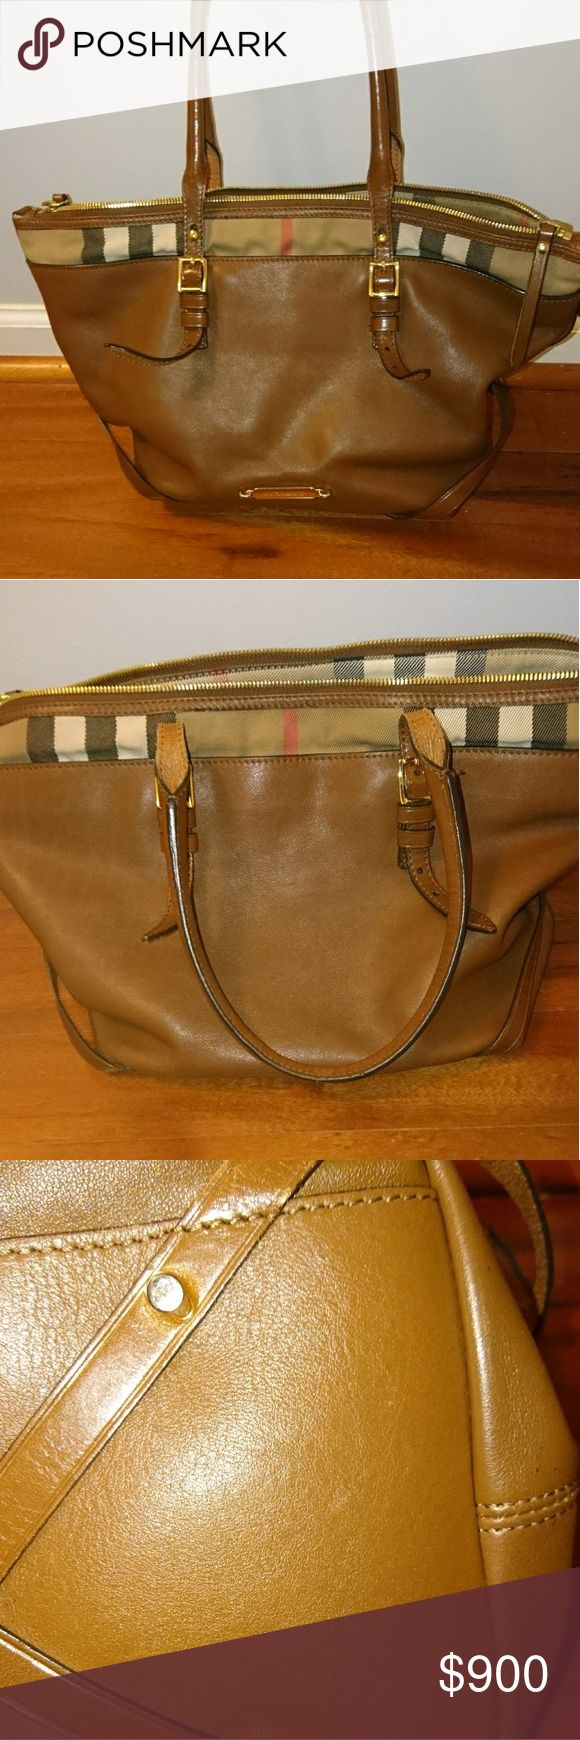 MUST GO! Burberry Medium Salisbury Tote Brown grainy leather medium Salisbury tote from Burberry. Gently used, bought from posh and had it authenticated so it is 100% authentic. Few scrapes on the bottom and small scratches from hardware onto leather and on hardware itself. Beautiful bag in EUC! Posh will authenticate over 500$.  Willing to negotiate!  Burberry Bags Totes